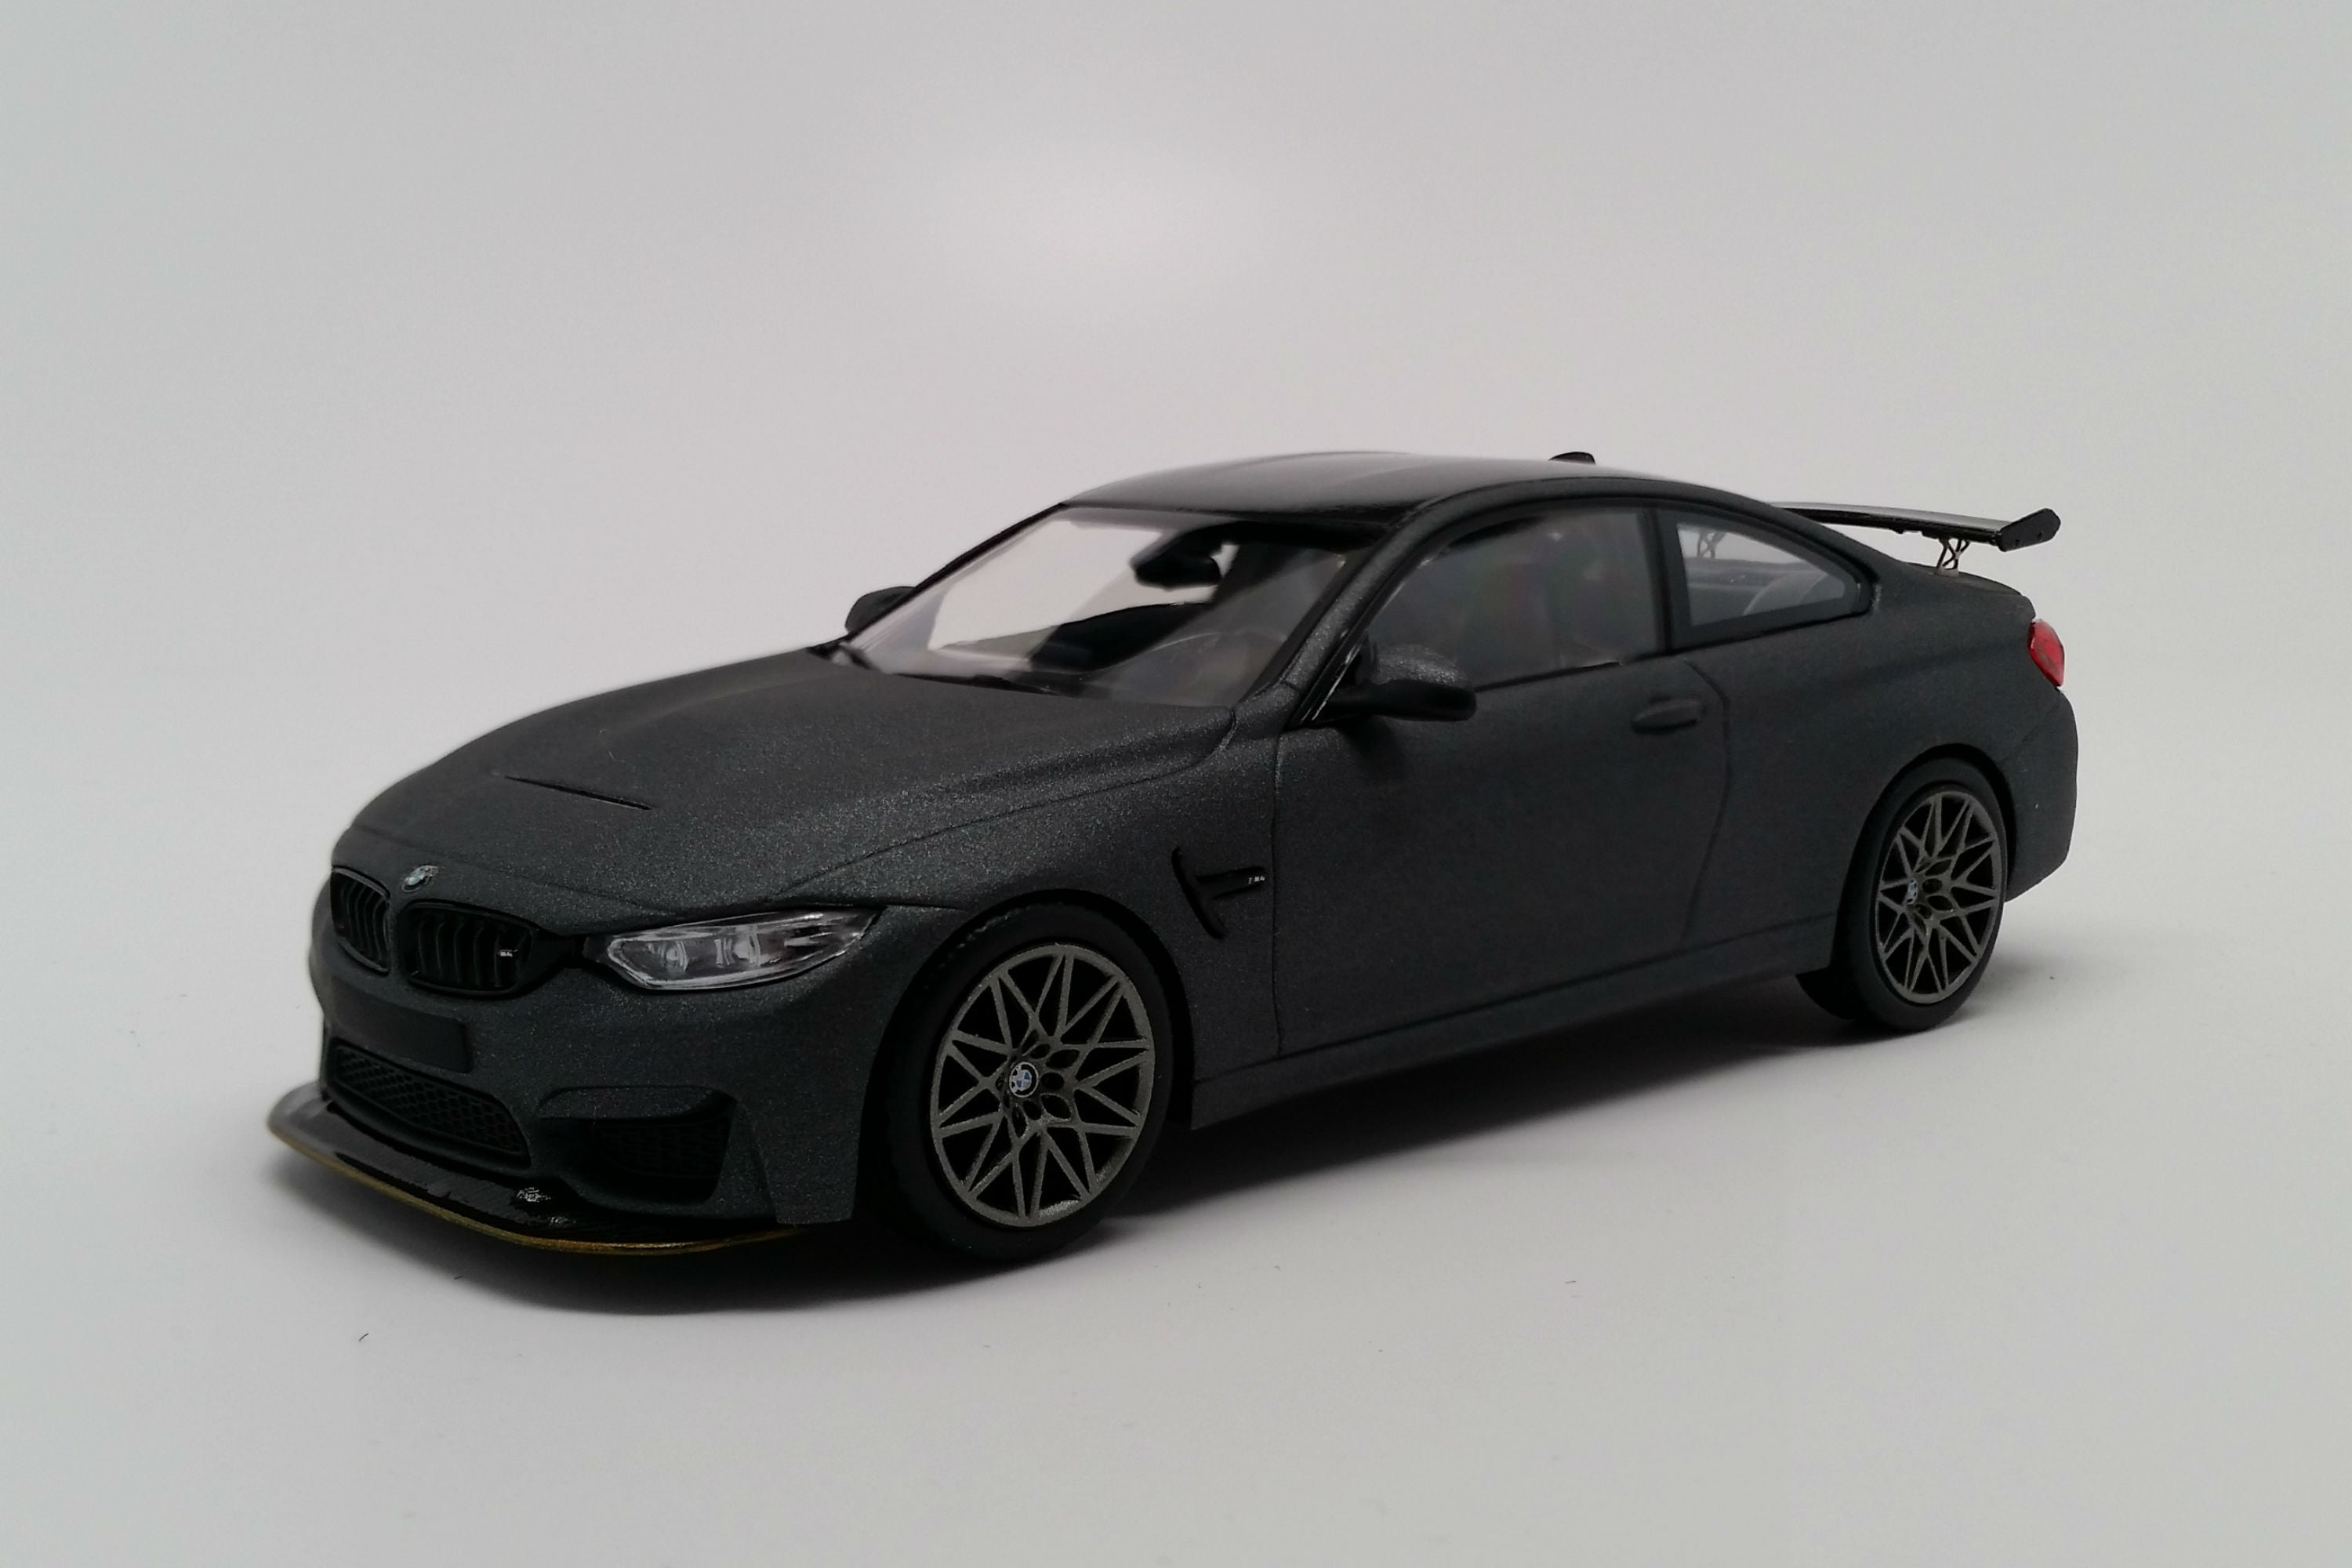 BMW M4 GTS (2016) | 1:43 Scale Diecast Model Car by Minichamps | Front Quarter